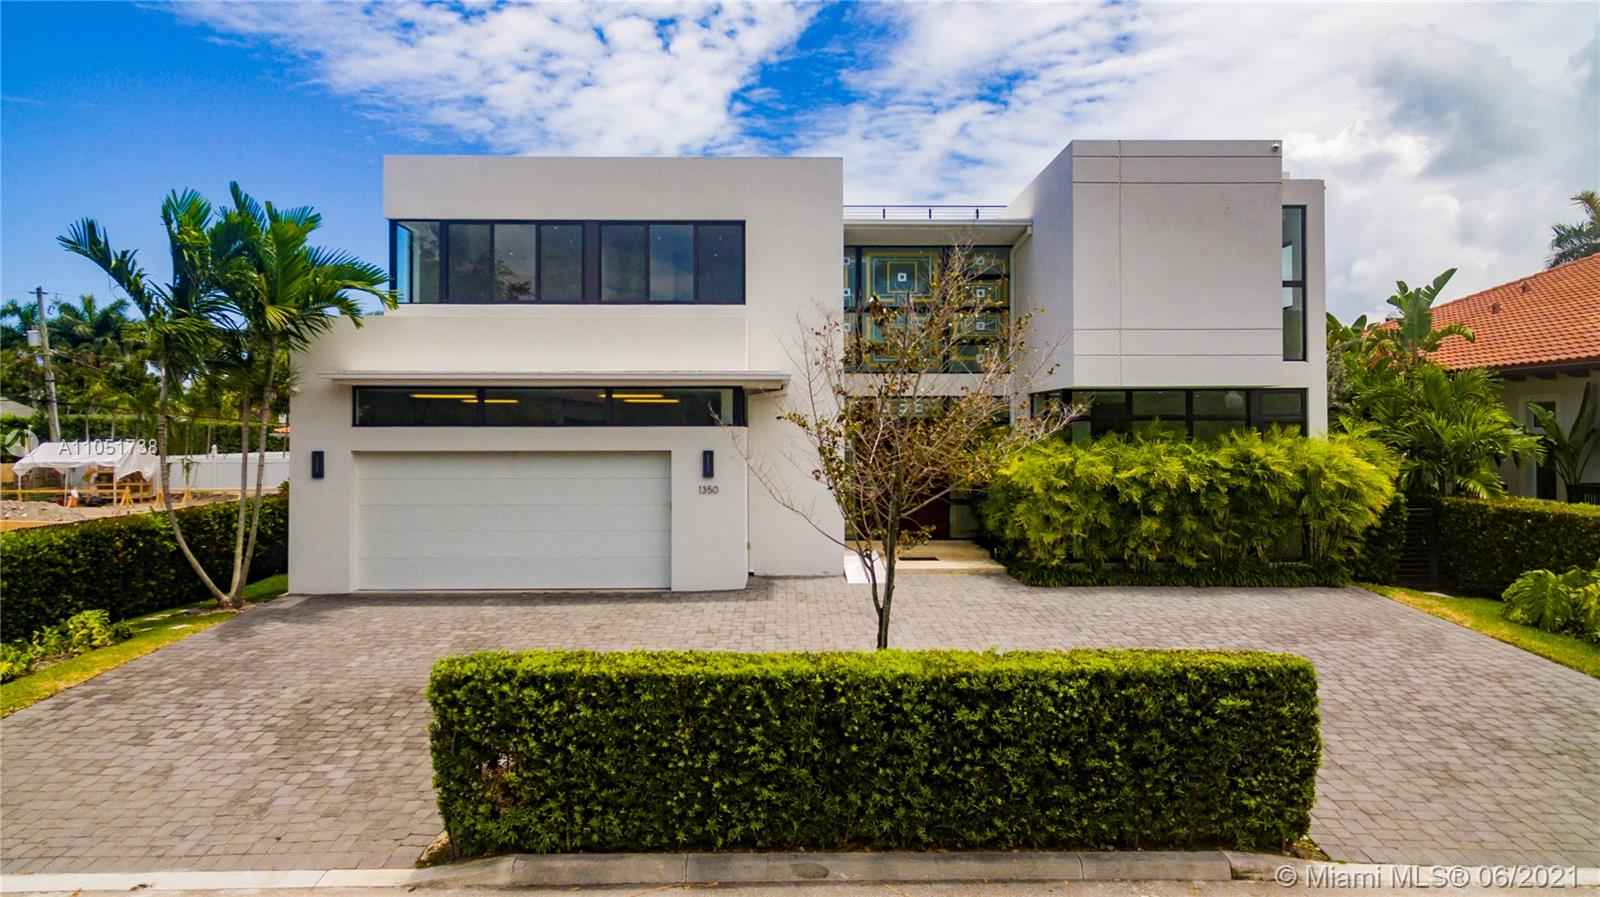 New Construction (2016) w/ leading edge architecture. Beautiful  home situated in exclusive Bay Harbor Islands. 2-story residence features 6bd/6.5ba + study w/ over 5,300 sf under a/c & 6,000 sf gross space. Magnificent Double hight ceilings, spectacular  kitchen, top of the line appliances, exquisite finishes, open & spacious living & dining rm. Covered patio, pool, Jacuzzi + rooftop terrace. Has an elevator.